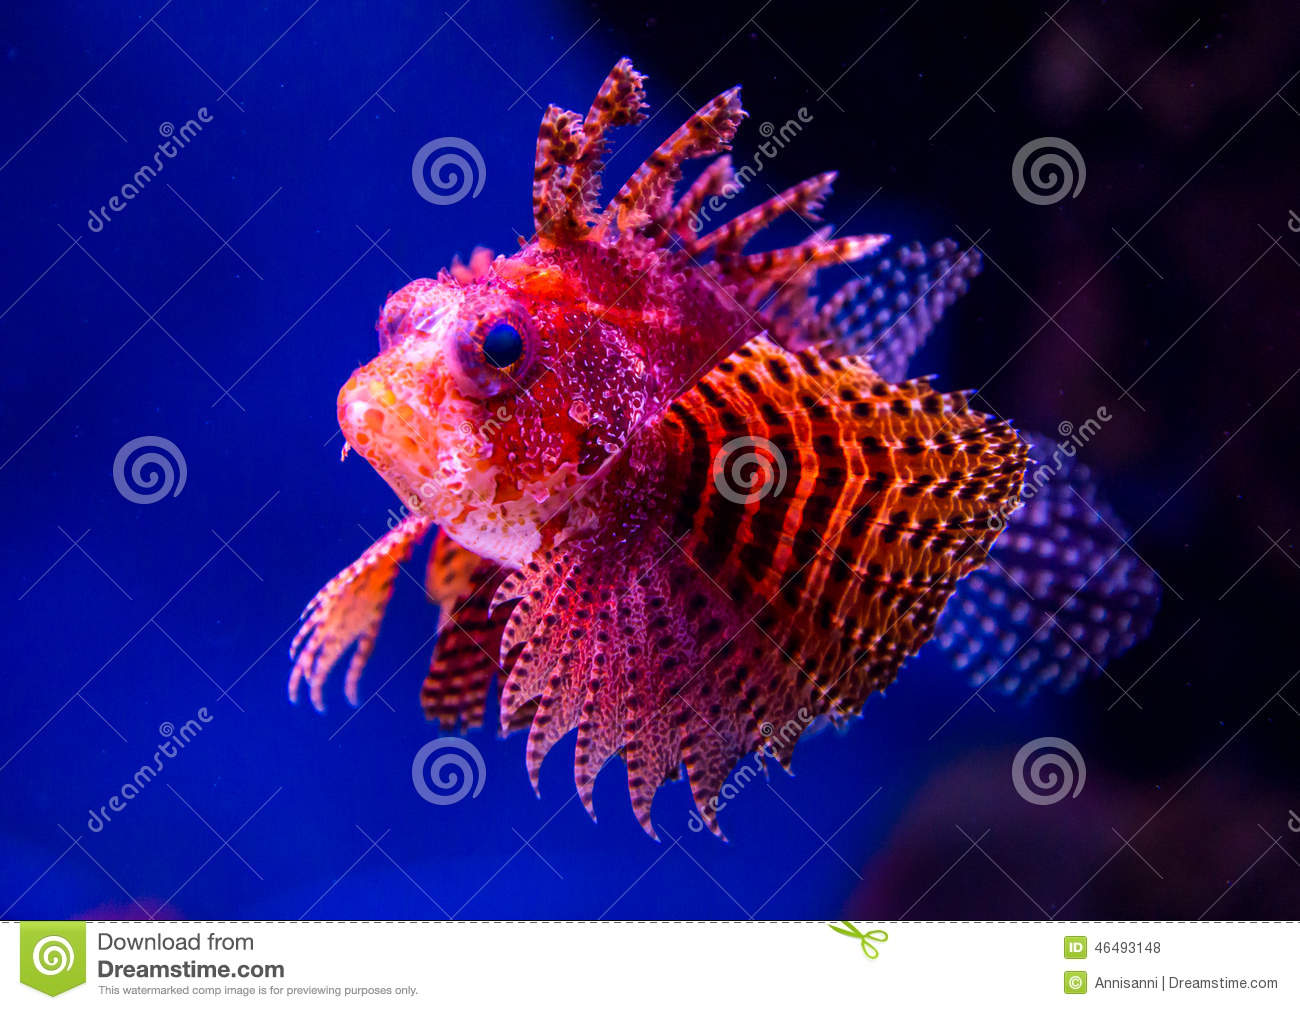 Exotic Brightly Decorated With Red-orange Fish Stock Photo - Image ...